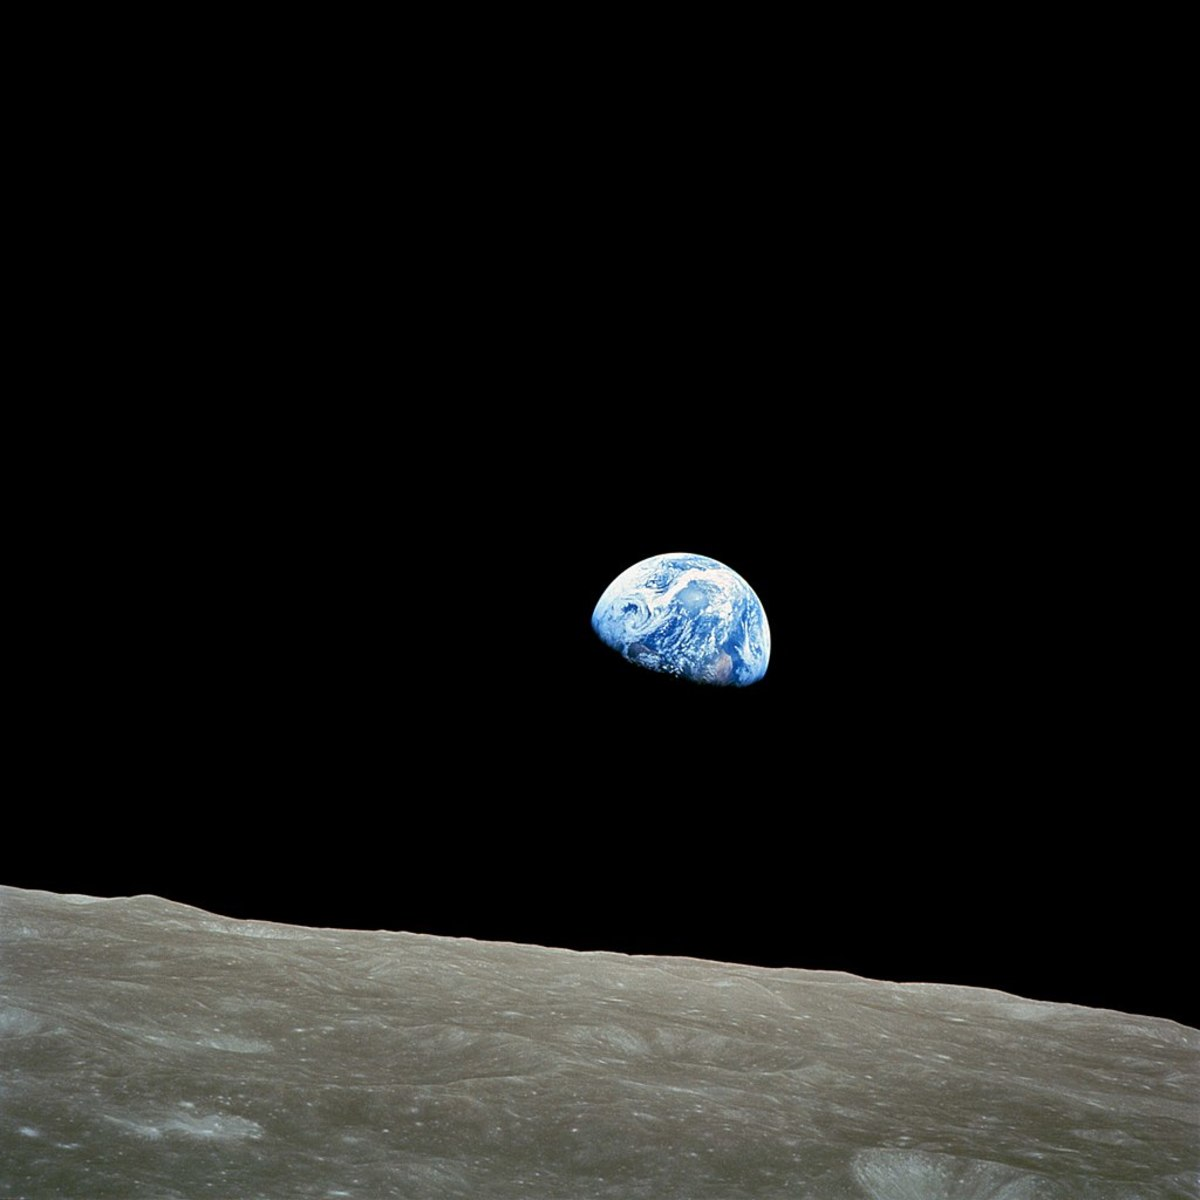 Earth from the vantage point of the Moon.